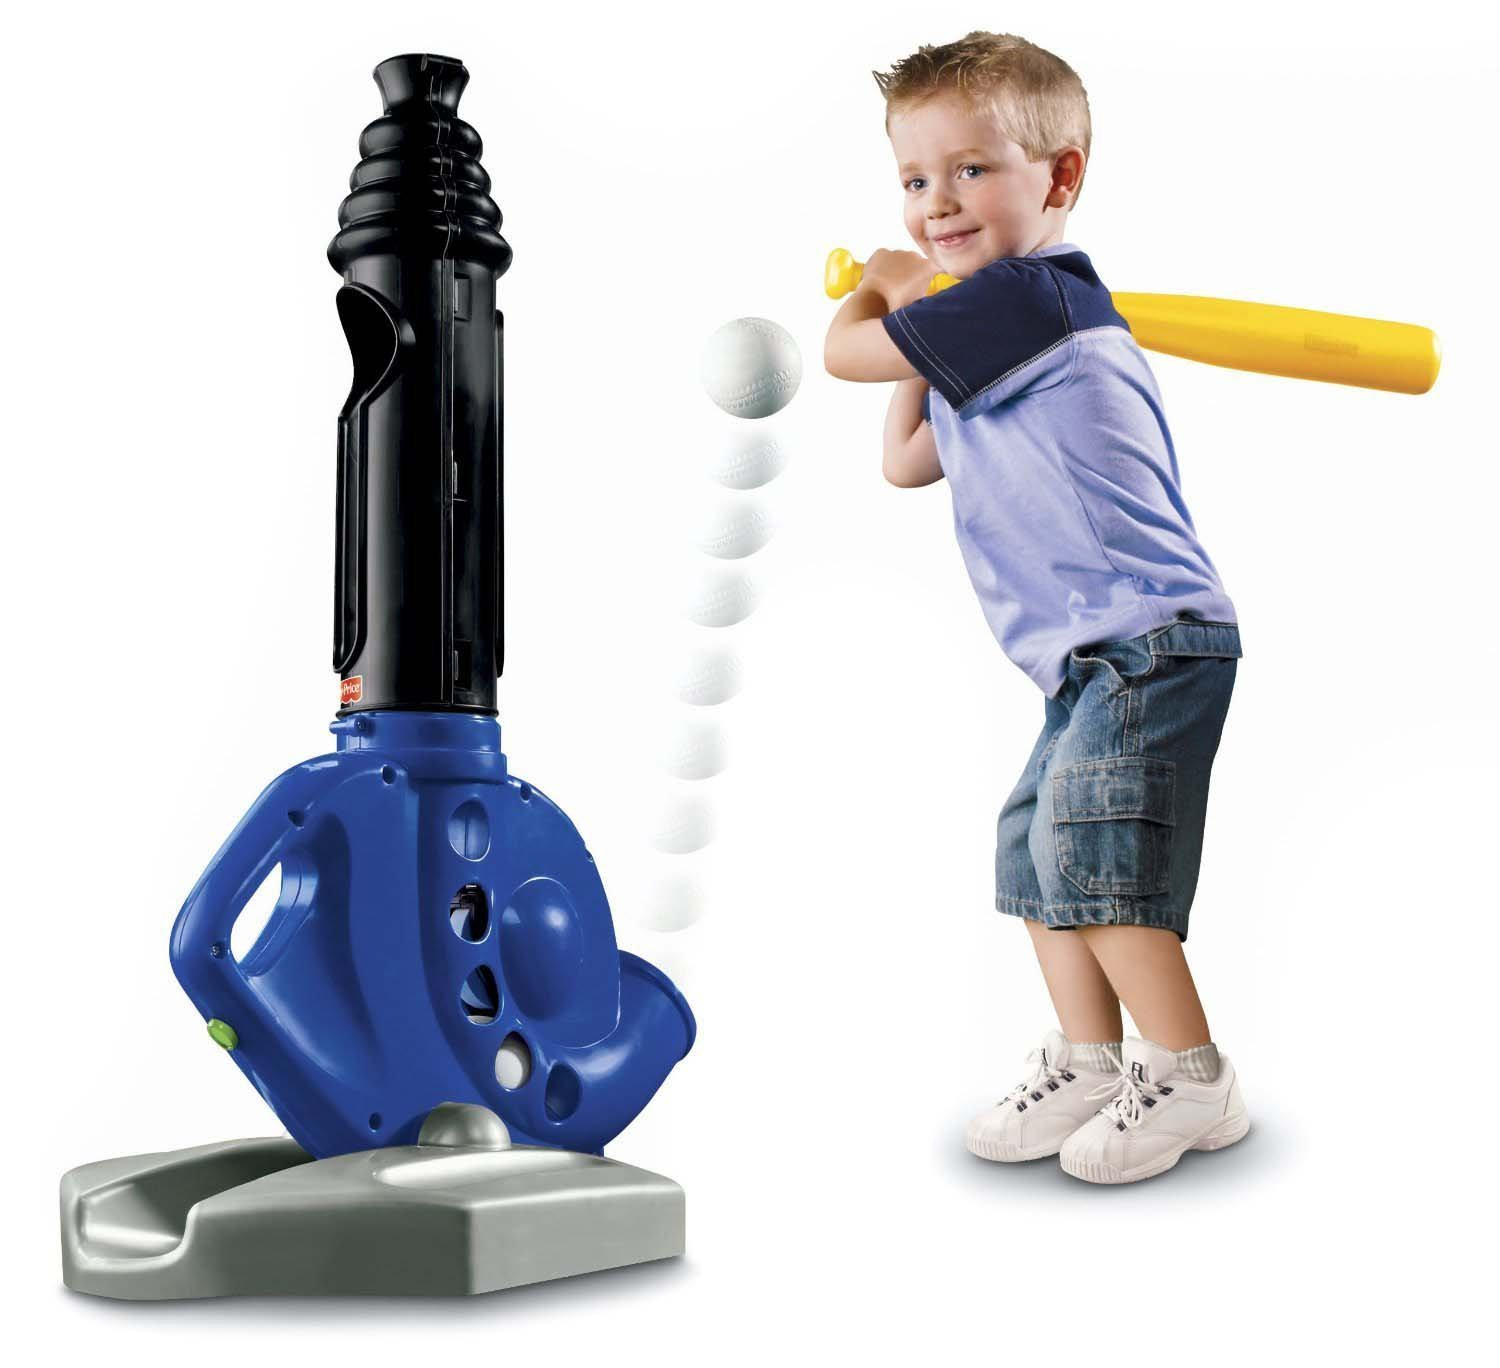 Cool Toys For Boys Age 4 : Best gifts for year old boys in itsy bitsy fun